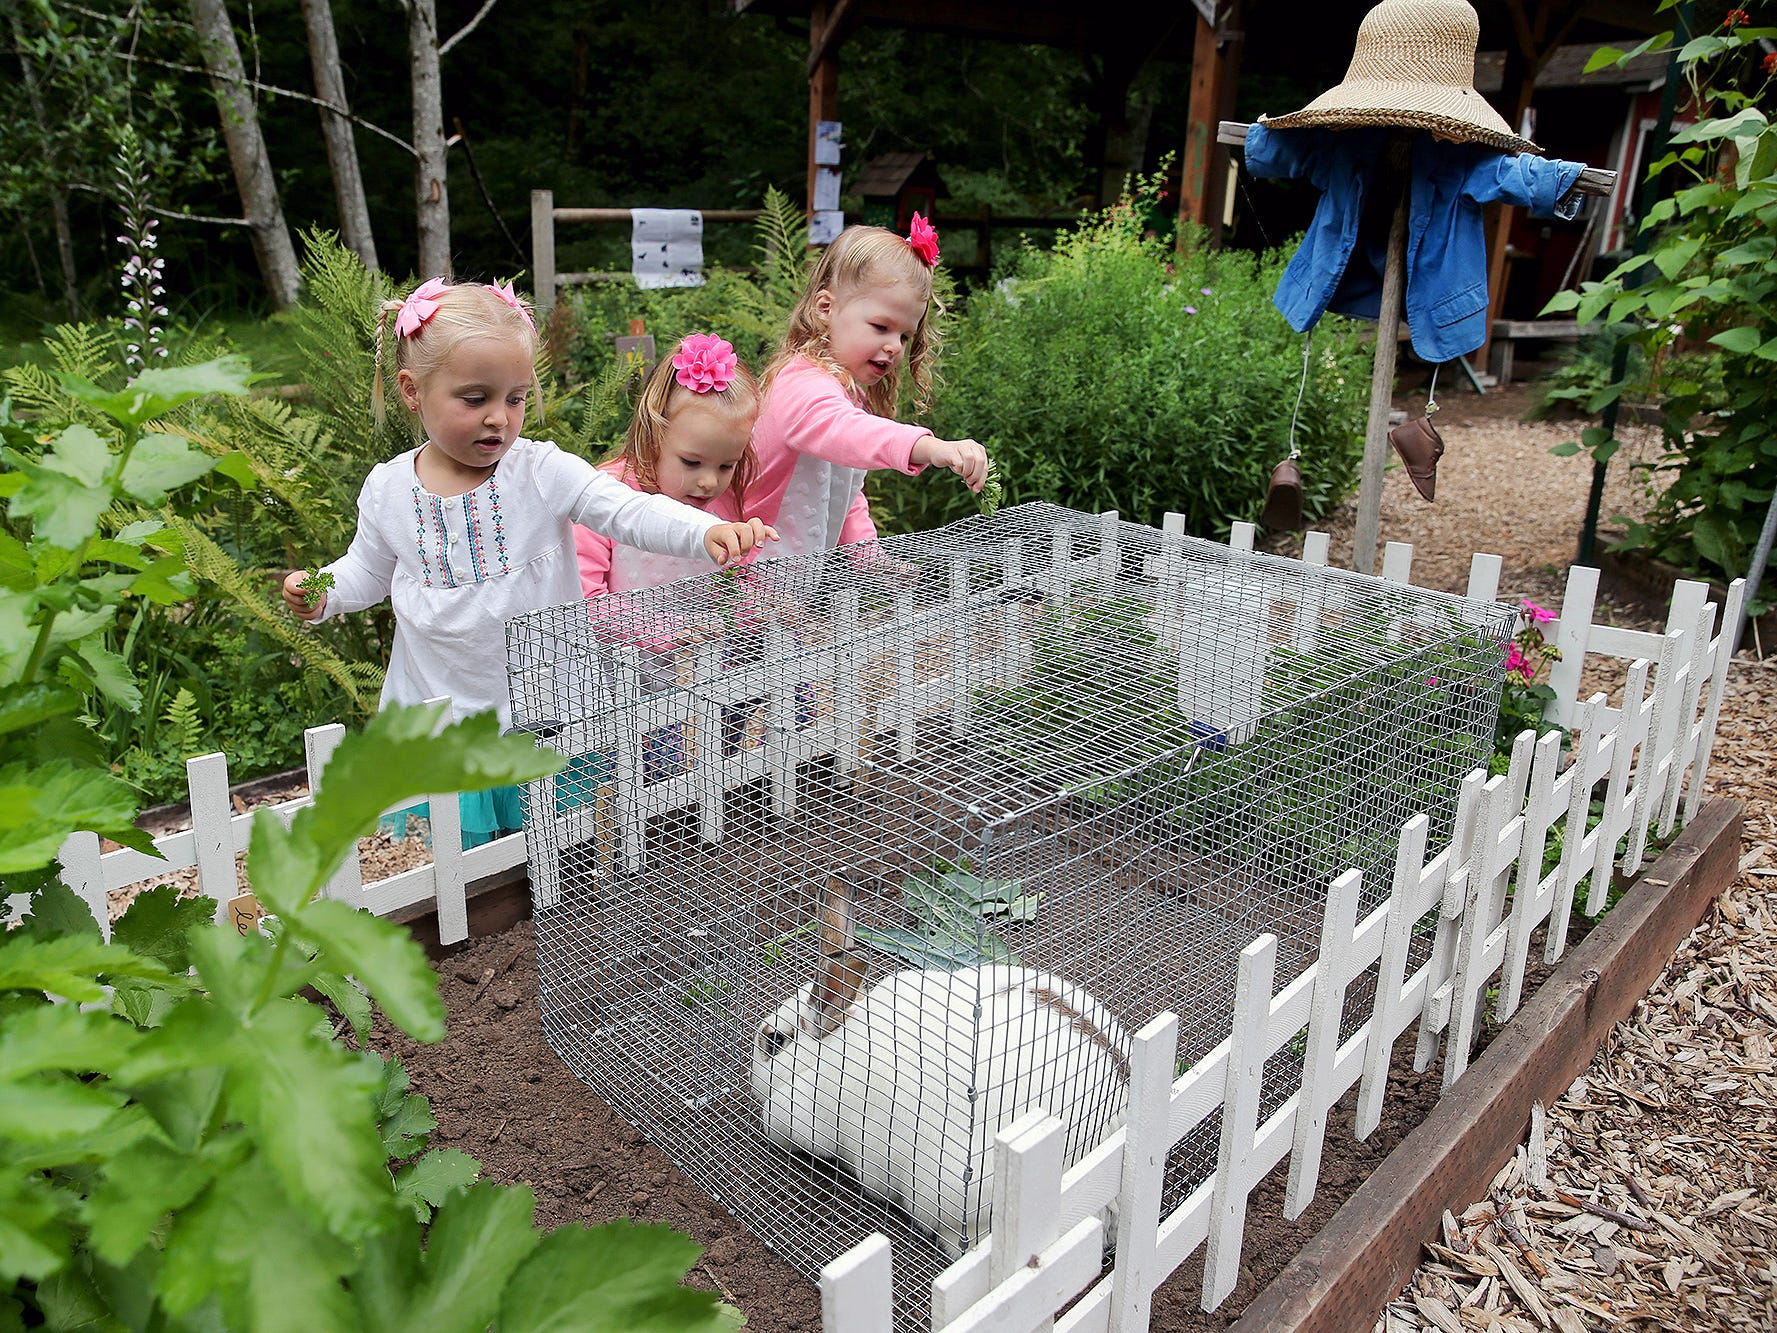 McKenna Slattery, 3, (left) feeds the rabbit at the 30th Anniversary celebration open house for the Anna Smith Garden on Saturday August 4, 2018.  Helping are twins Jordy Clough and sister Tessa, 3,.